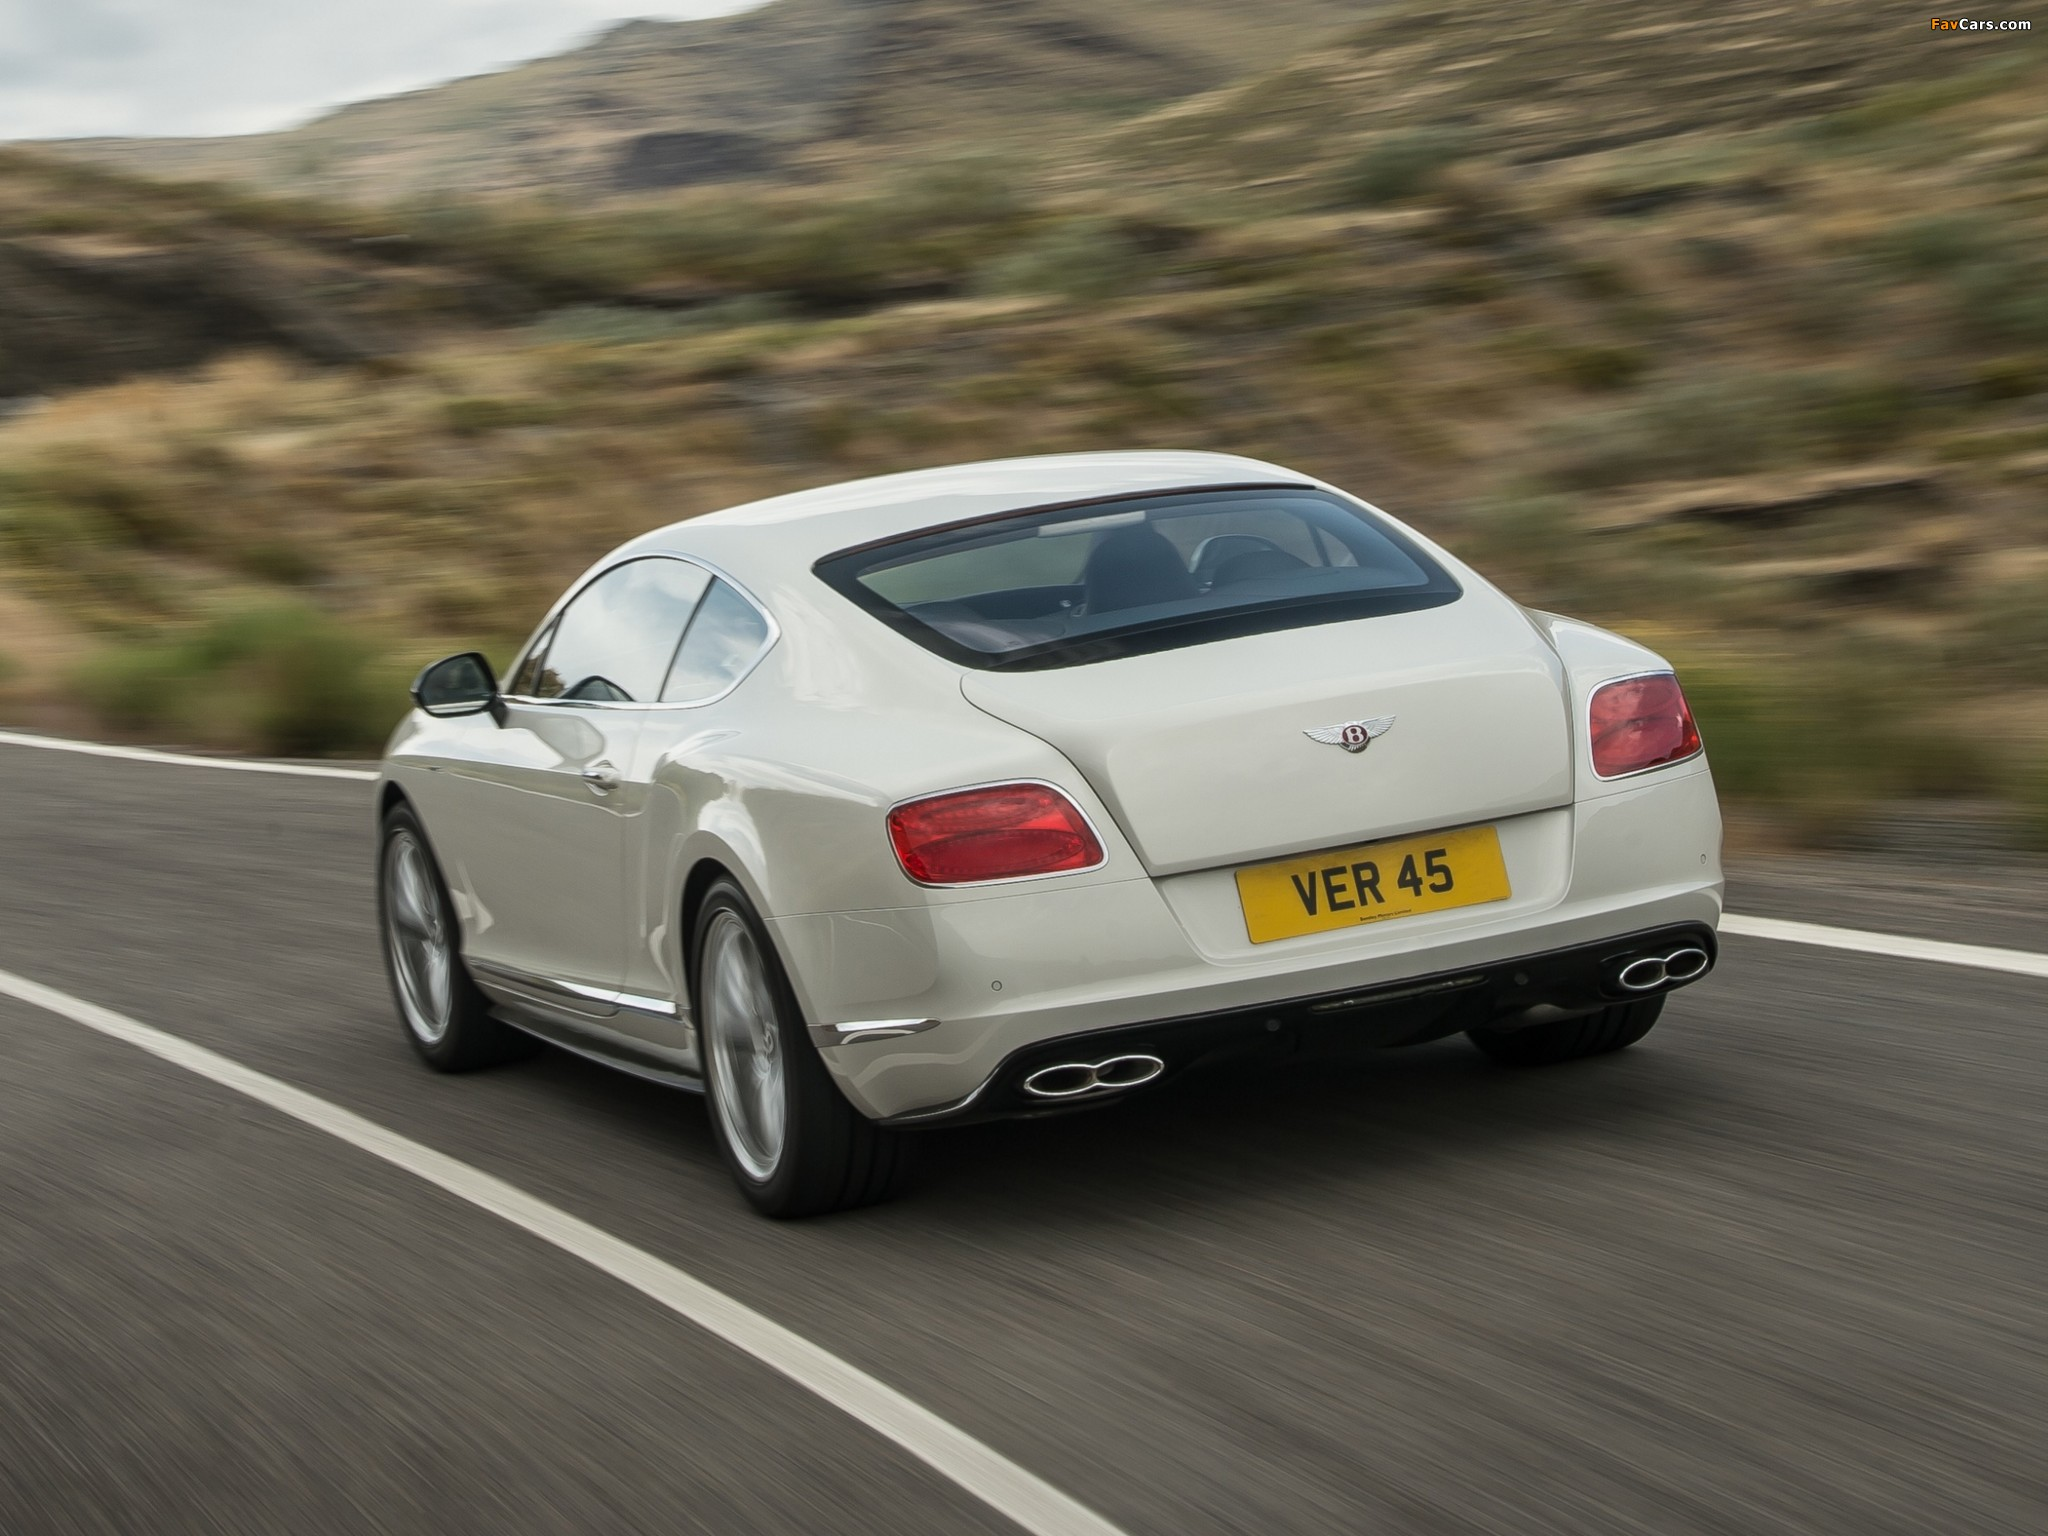 Bentley Continental GT V8 S Coupe 2013 pictures (2048 x 1536)